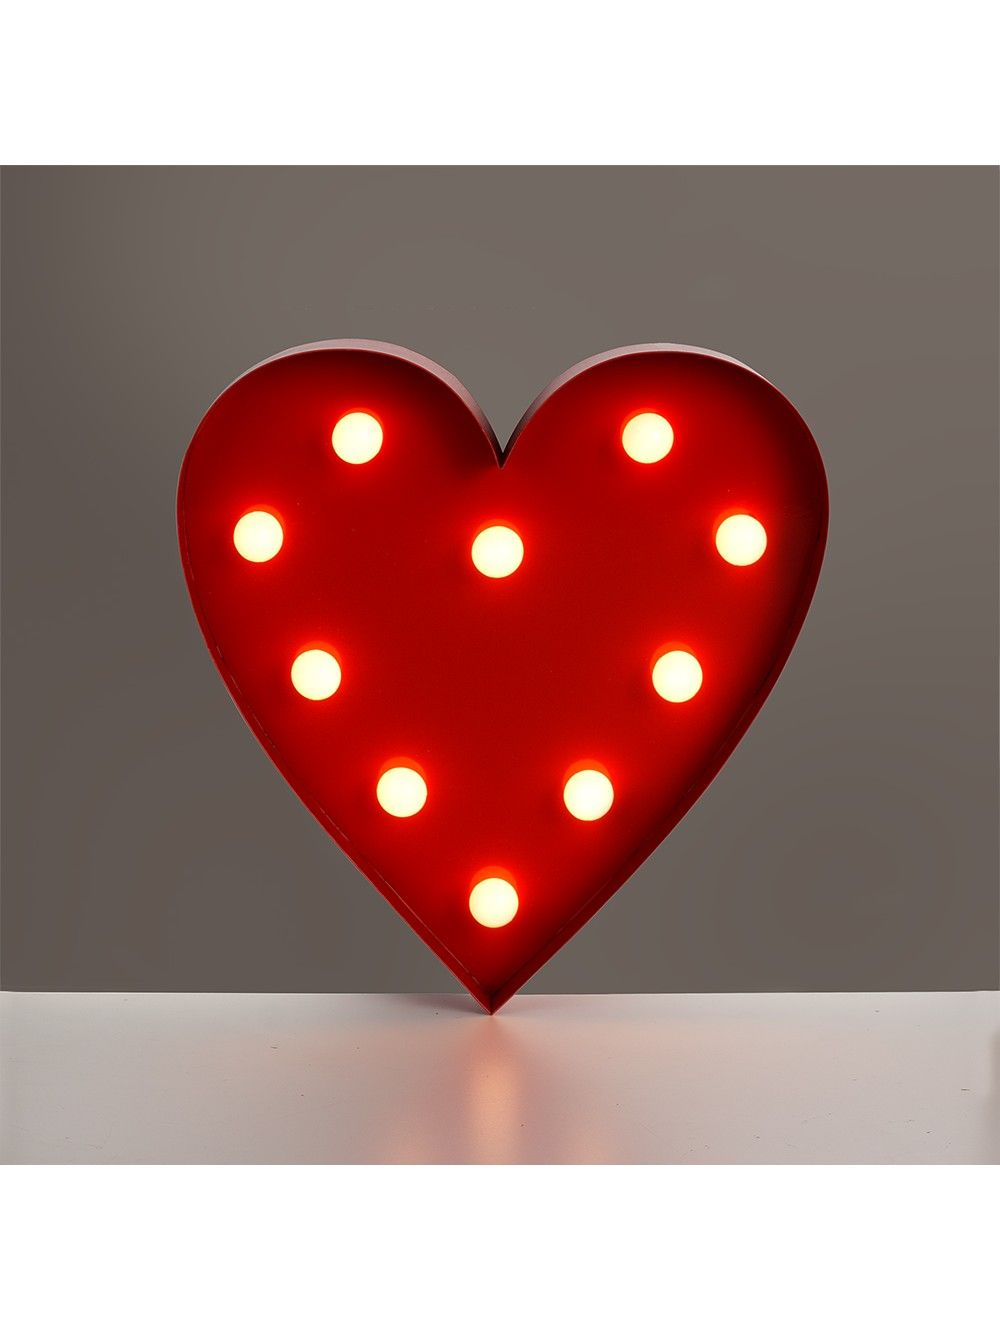 Good RED HEART SHAPED WALL HANGING WITH WARM WHITE LEDS LIGHTs